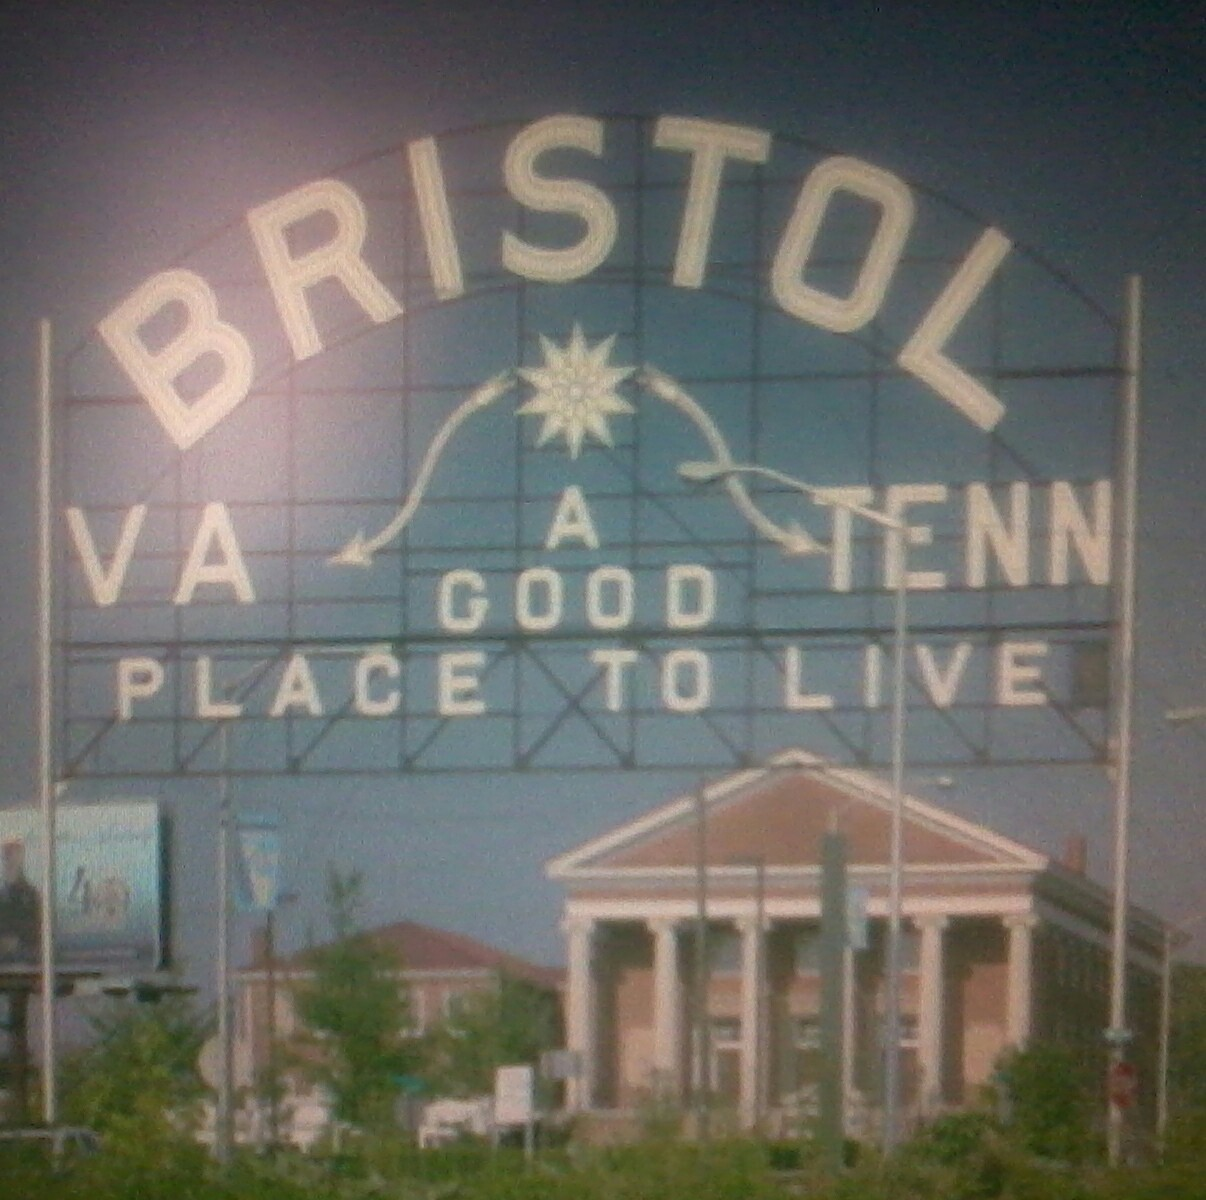 Bristol a good place to live we heart it bristol for Good place to live